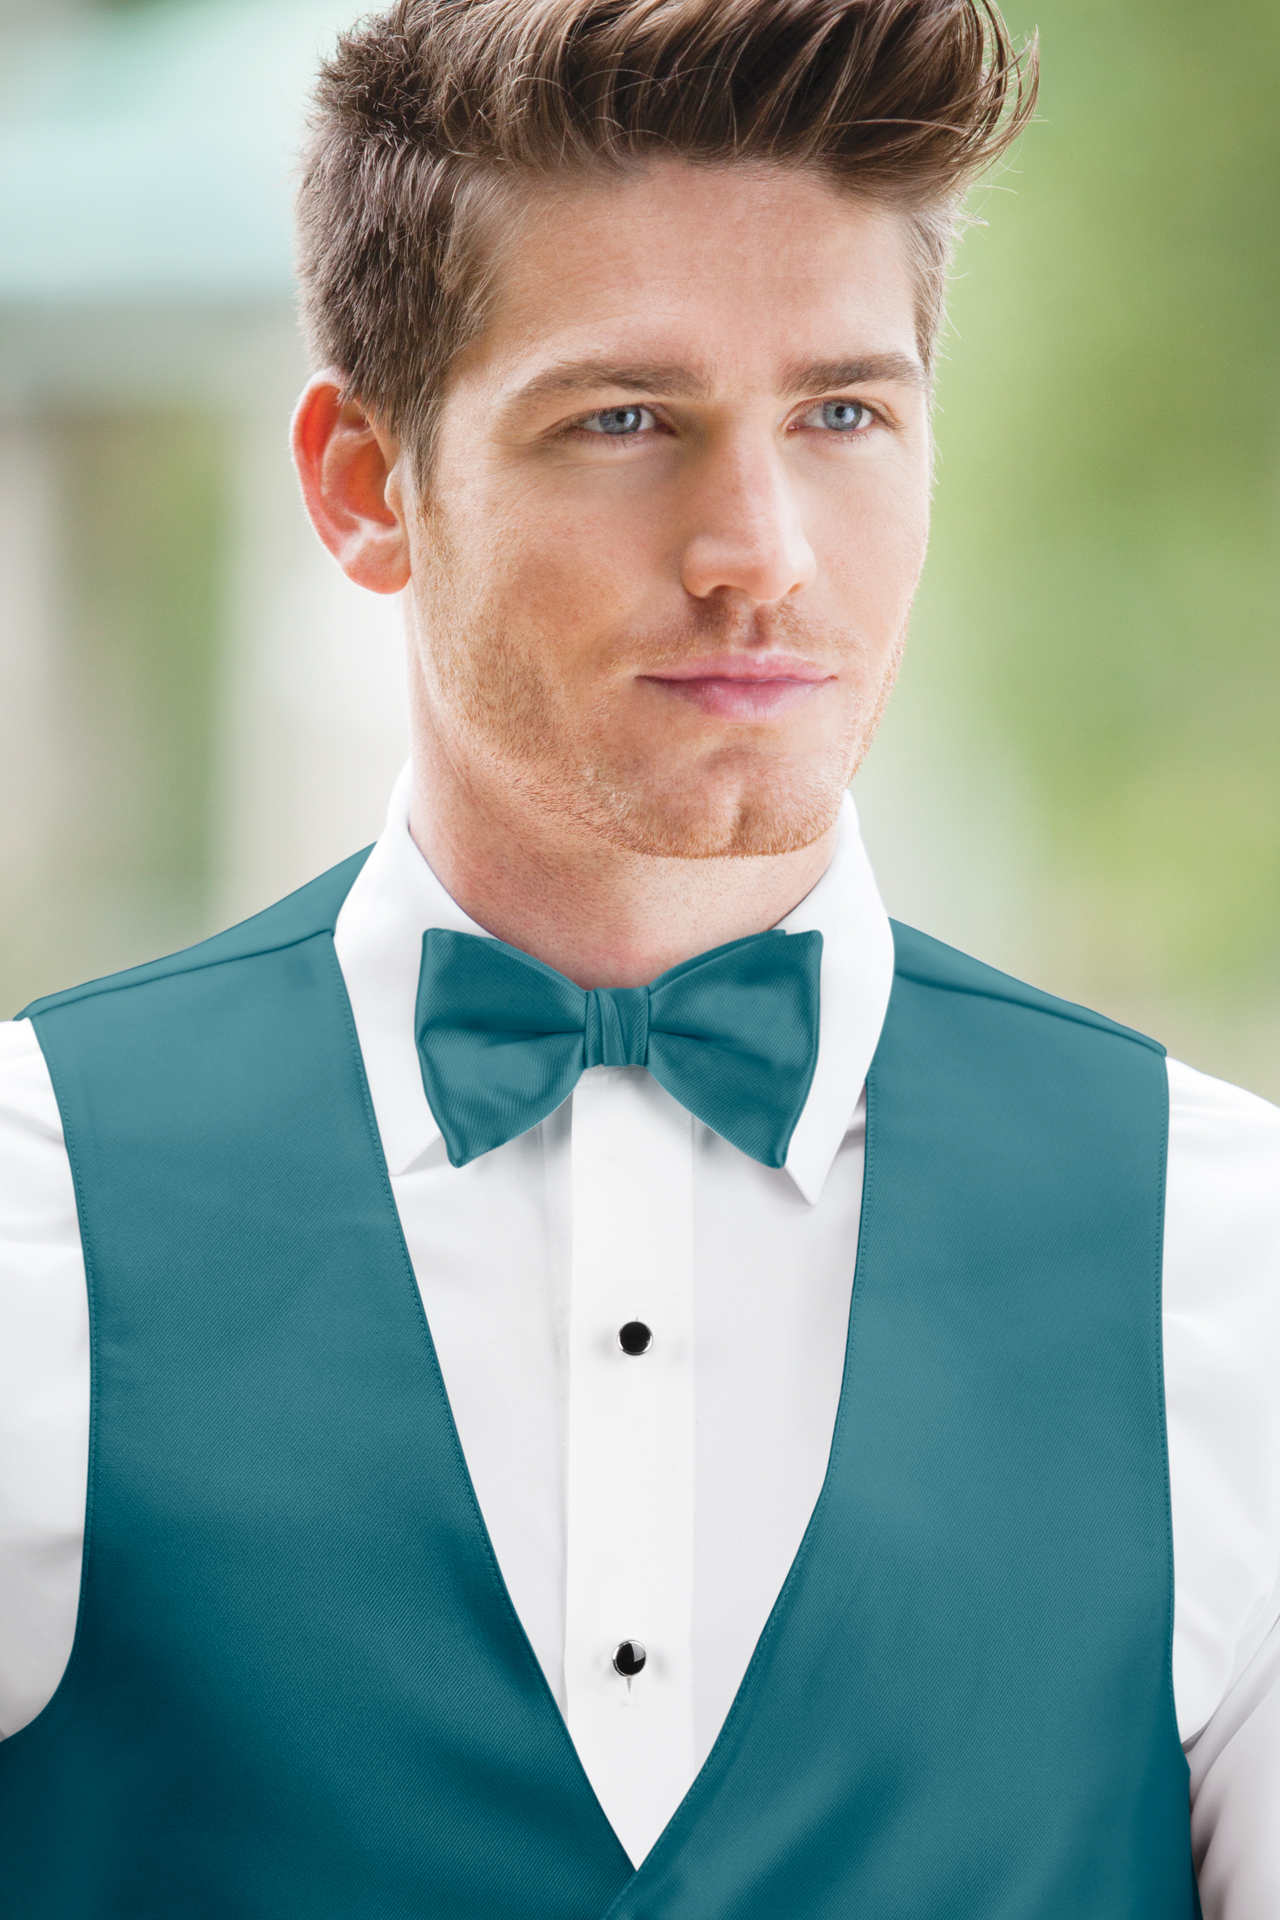 Expressions Teal Bow Tie | Jim\'s Formal Wear